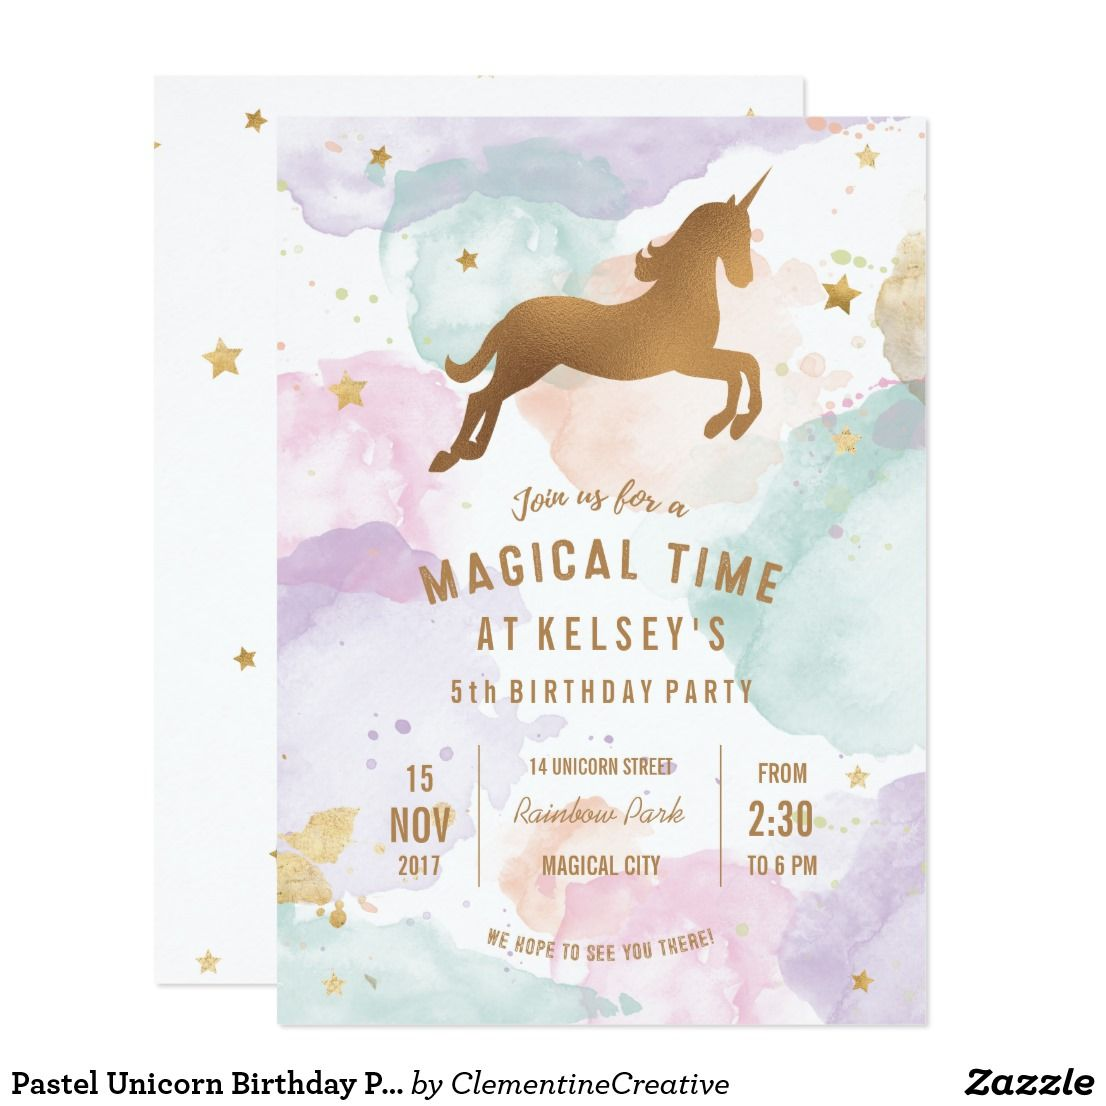 Pastel Unicorn Birthday Party Invitation | Invites: Birthday Parties ...